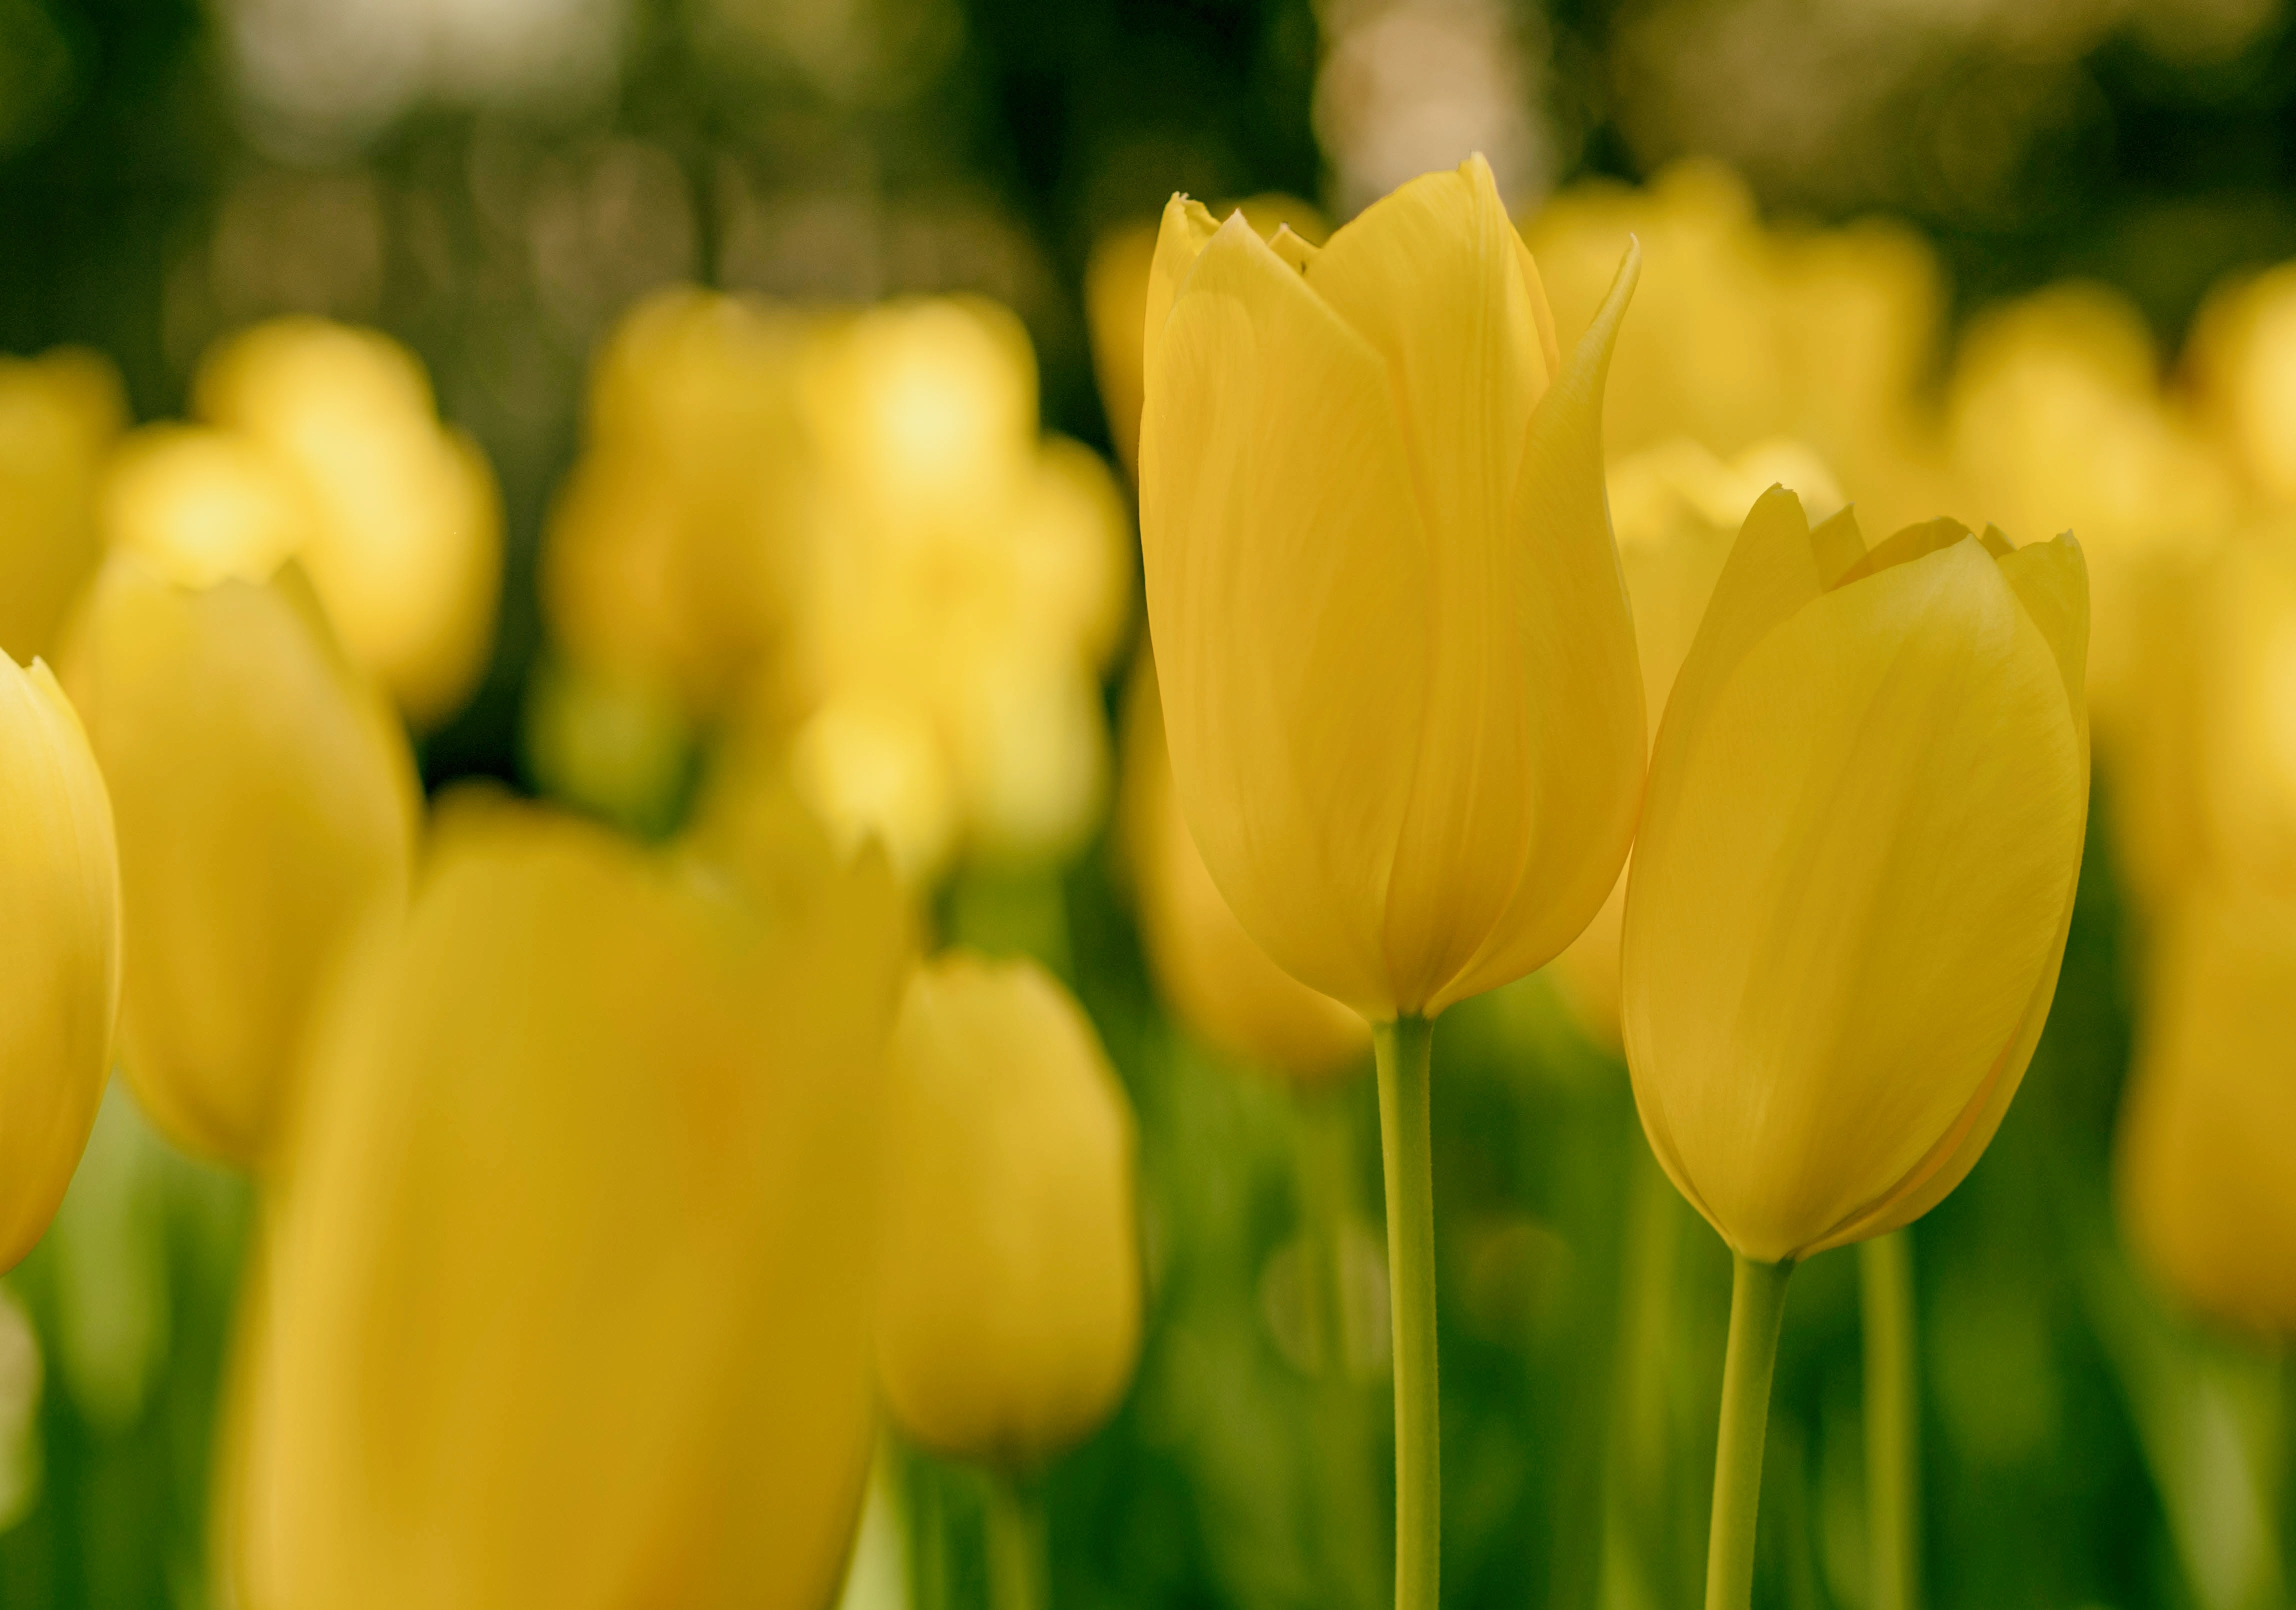 tilt shift lens photography of yellow tulips